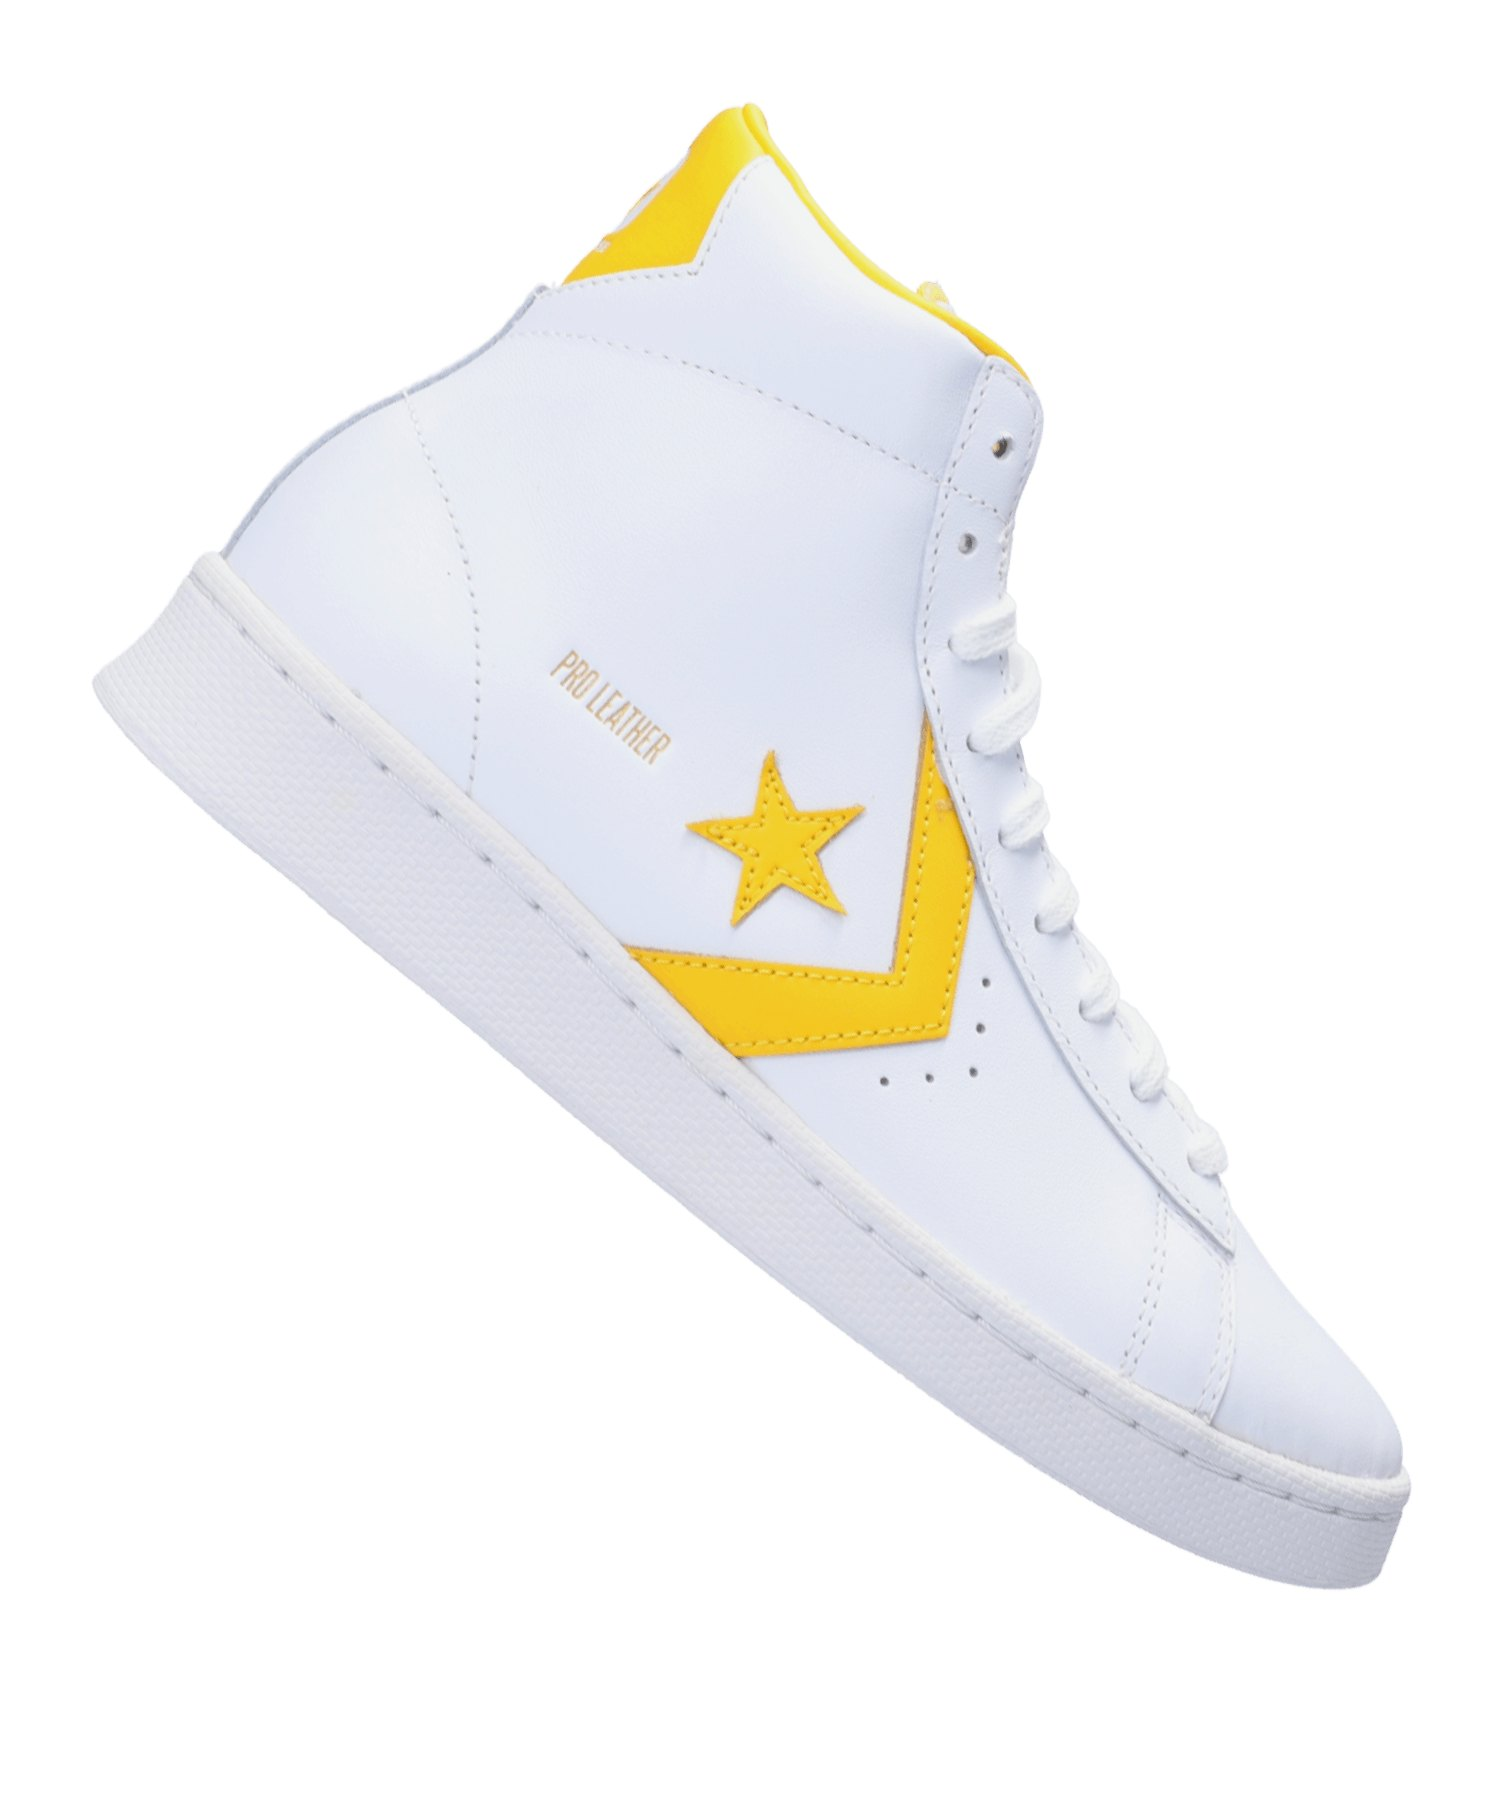 Converse Pro Leather Mid Sneaker Weiss F996 - weiss